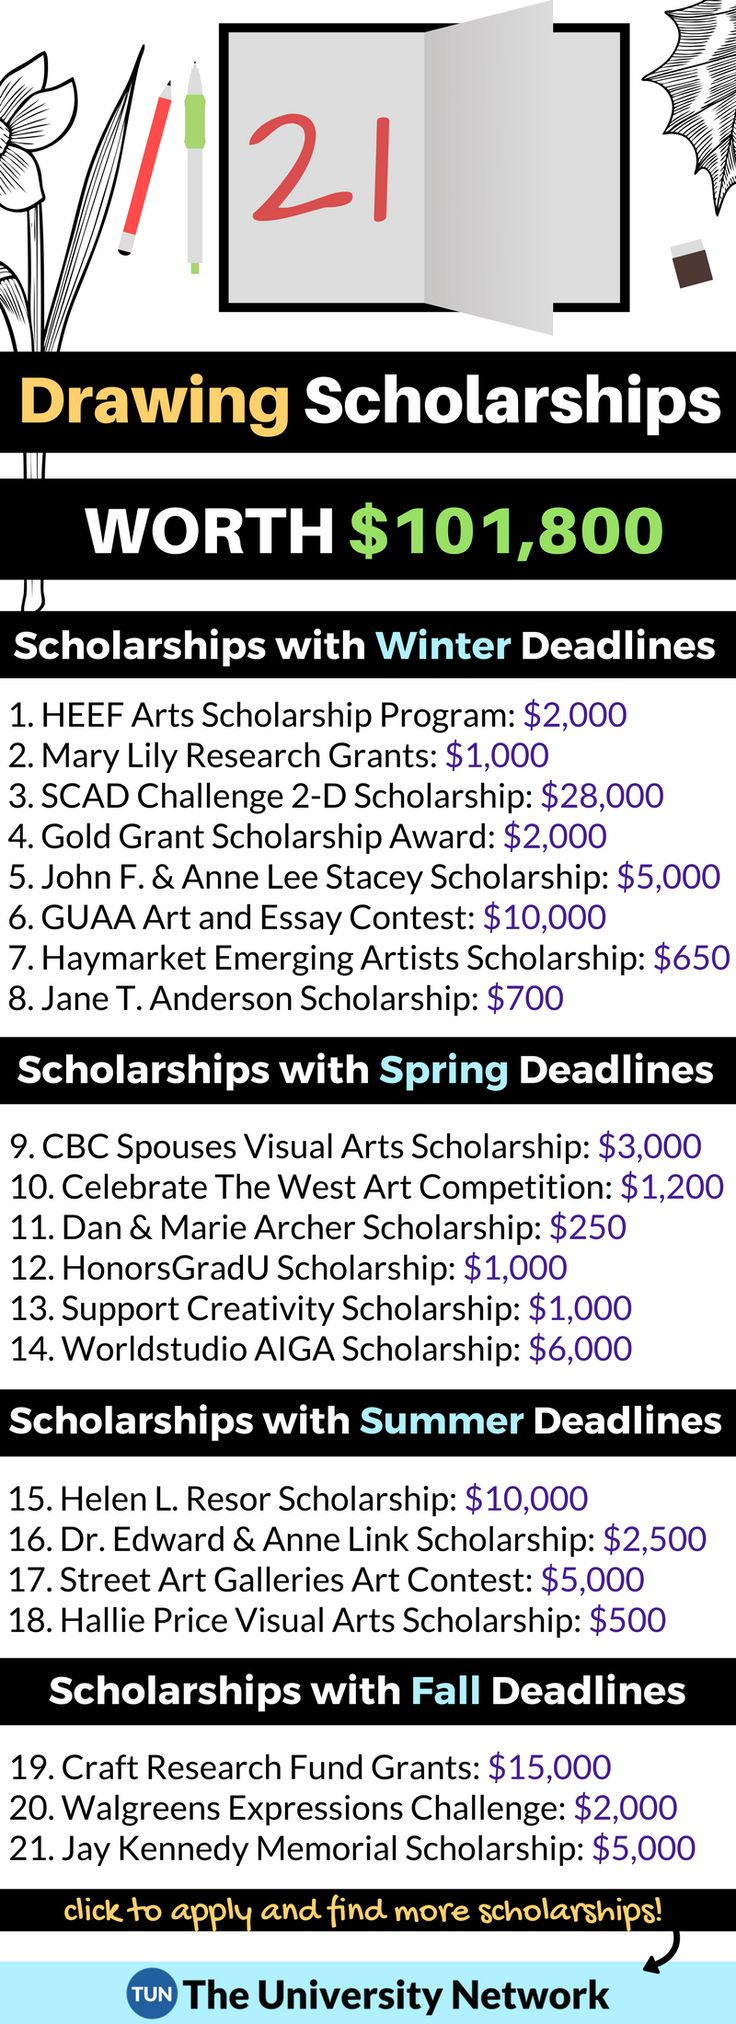 Here is a selection of Drawing Scholarships that are listed on TUN. #collegehelp